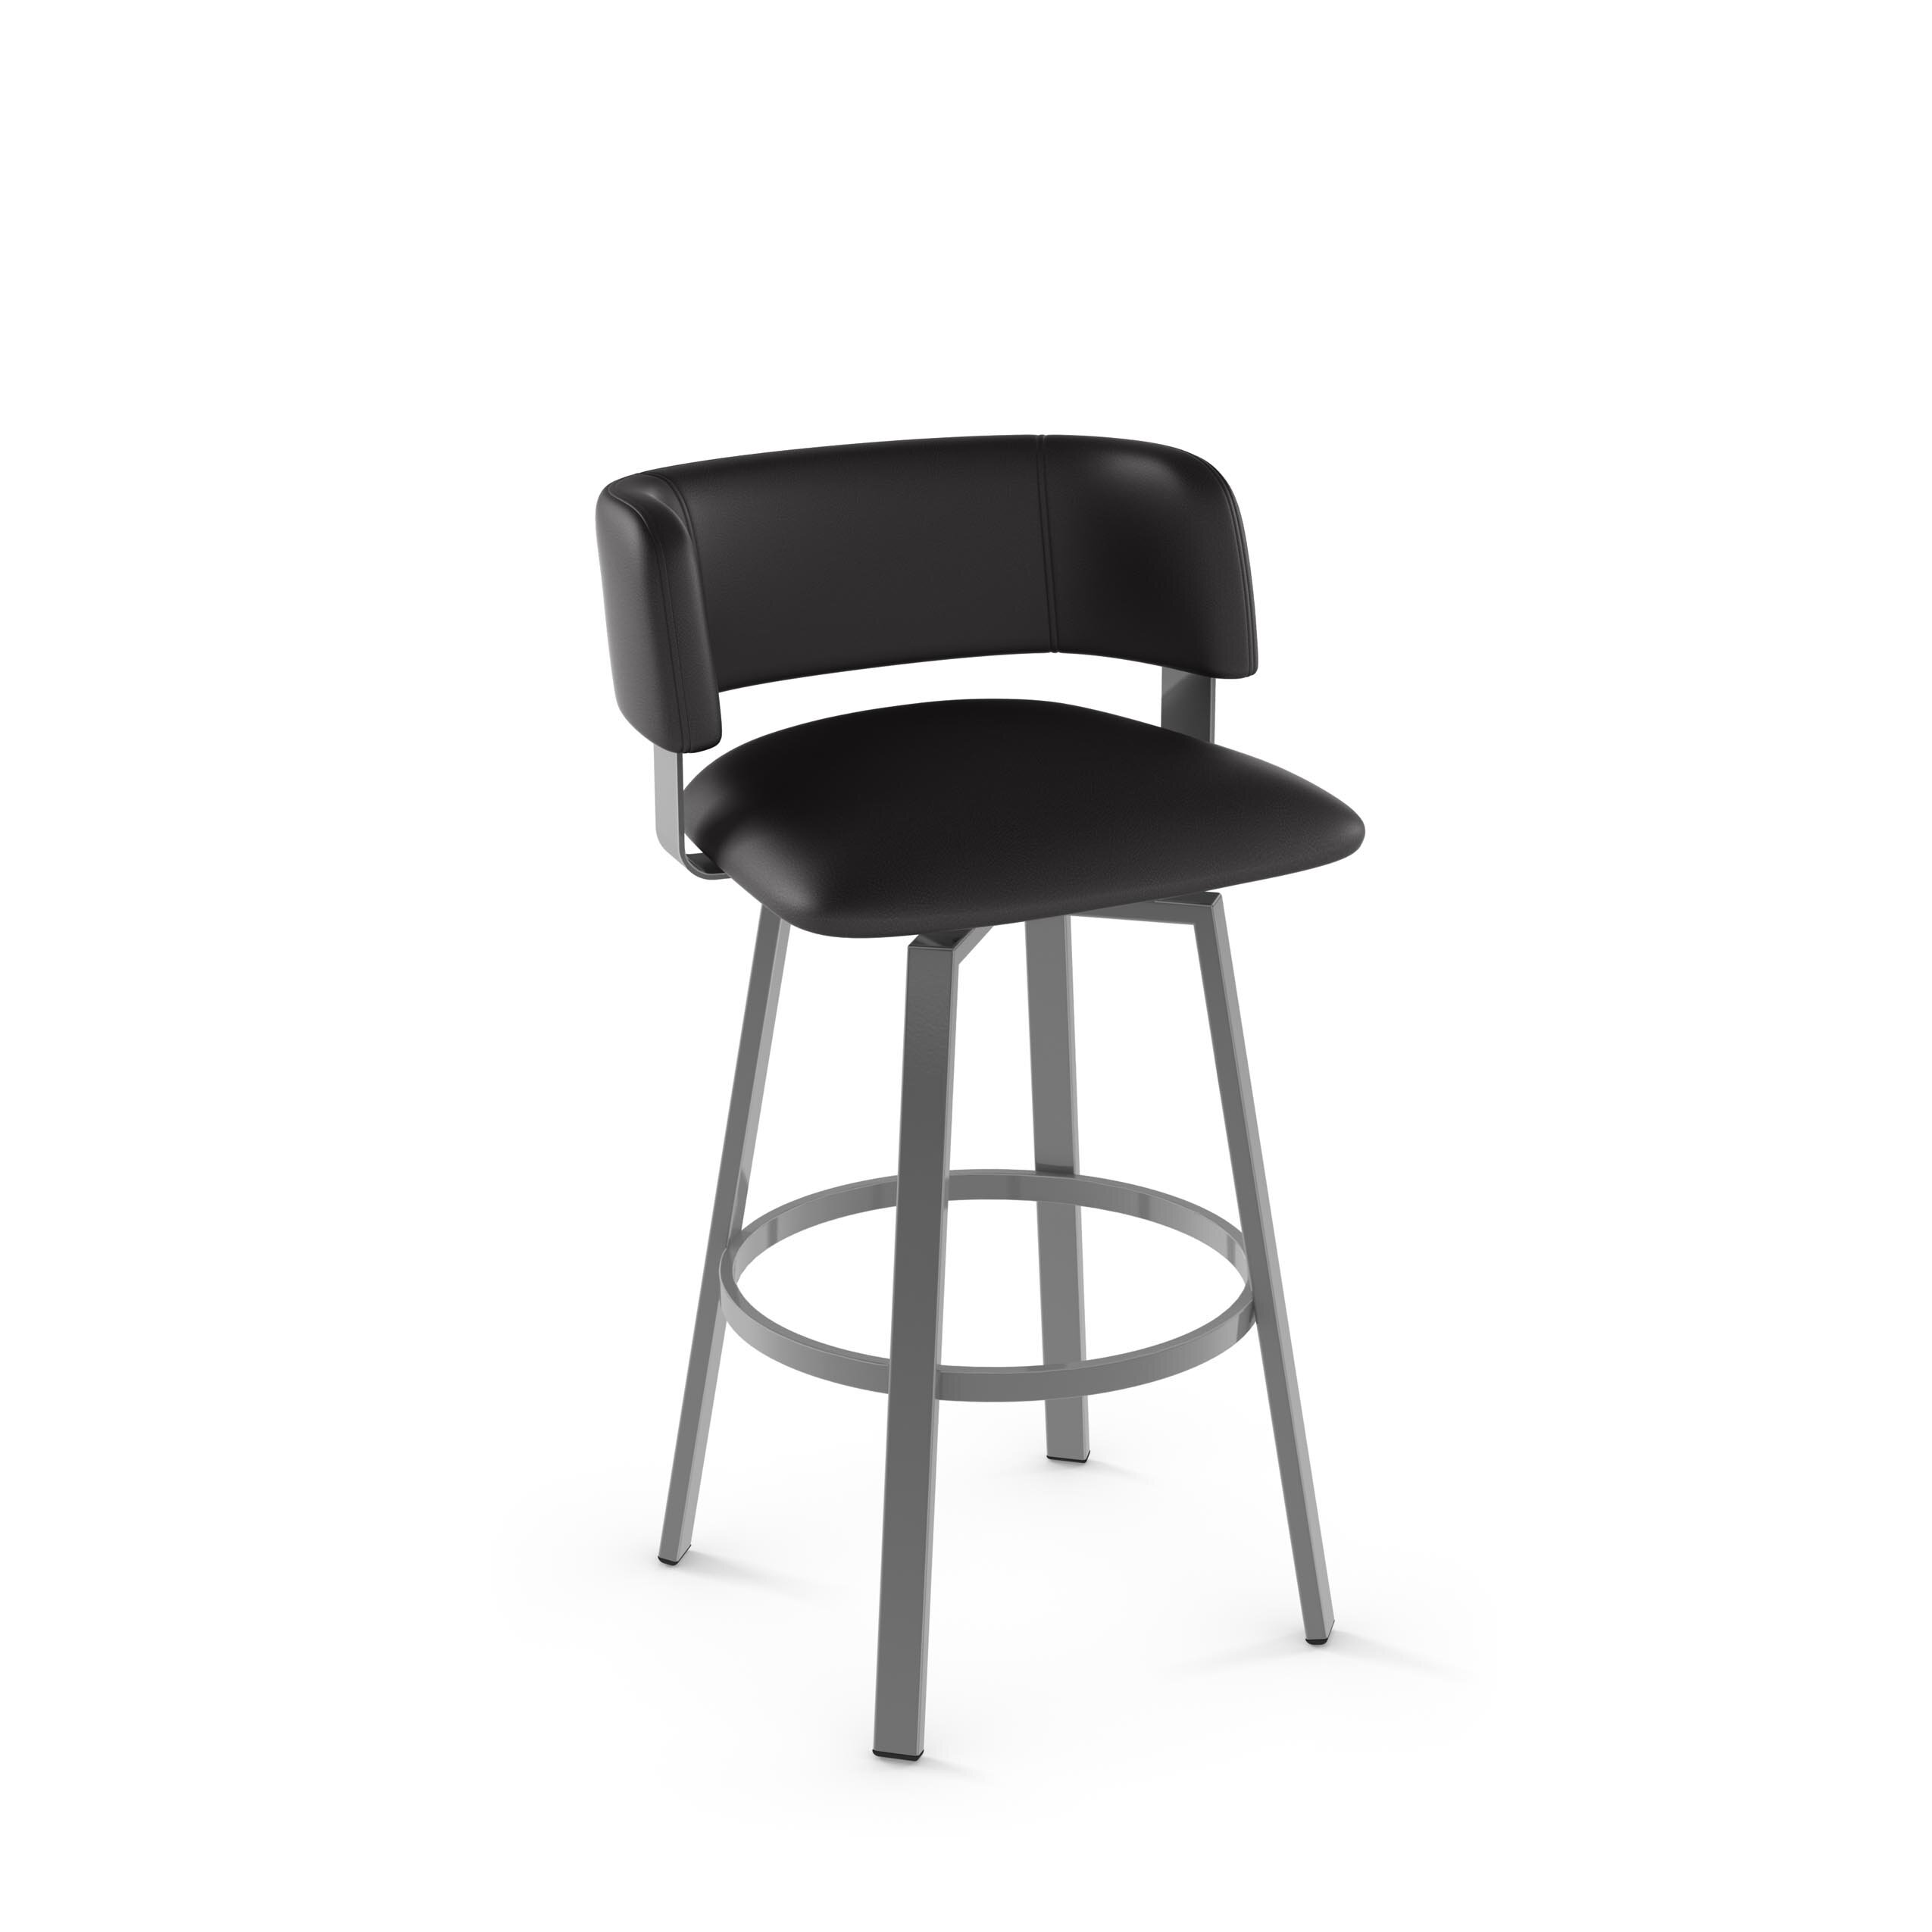 Amisco Bar Stools Large Size Of Bar Home And Bedroom  : Amisco Stinson 26 Swivel Bar Stool from minecraftmods.us size 2550 x 2550 jpeg 136kB